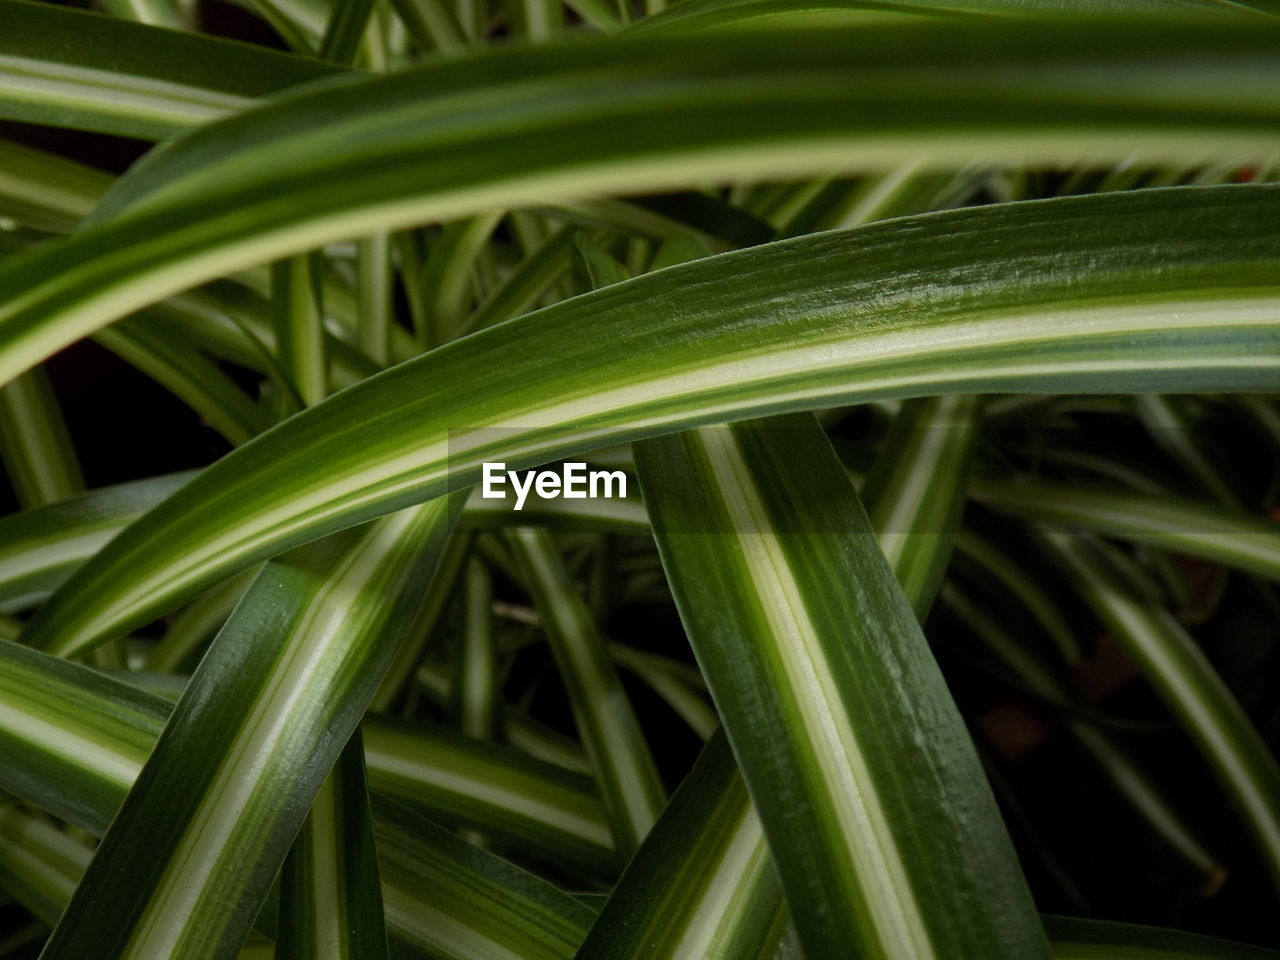 green color, leaf, plant part, growth, no people, plant, close-up, nature, freshness, day, beauty in nature, focus on foreground, outdoors, food, food and drink, vegetable, selective focus, blade of grass, grass, high angle view, palm leaf